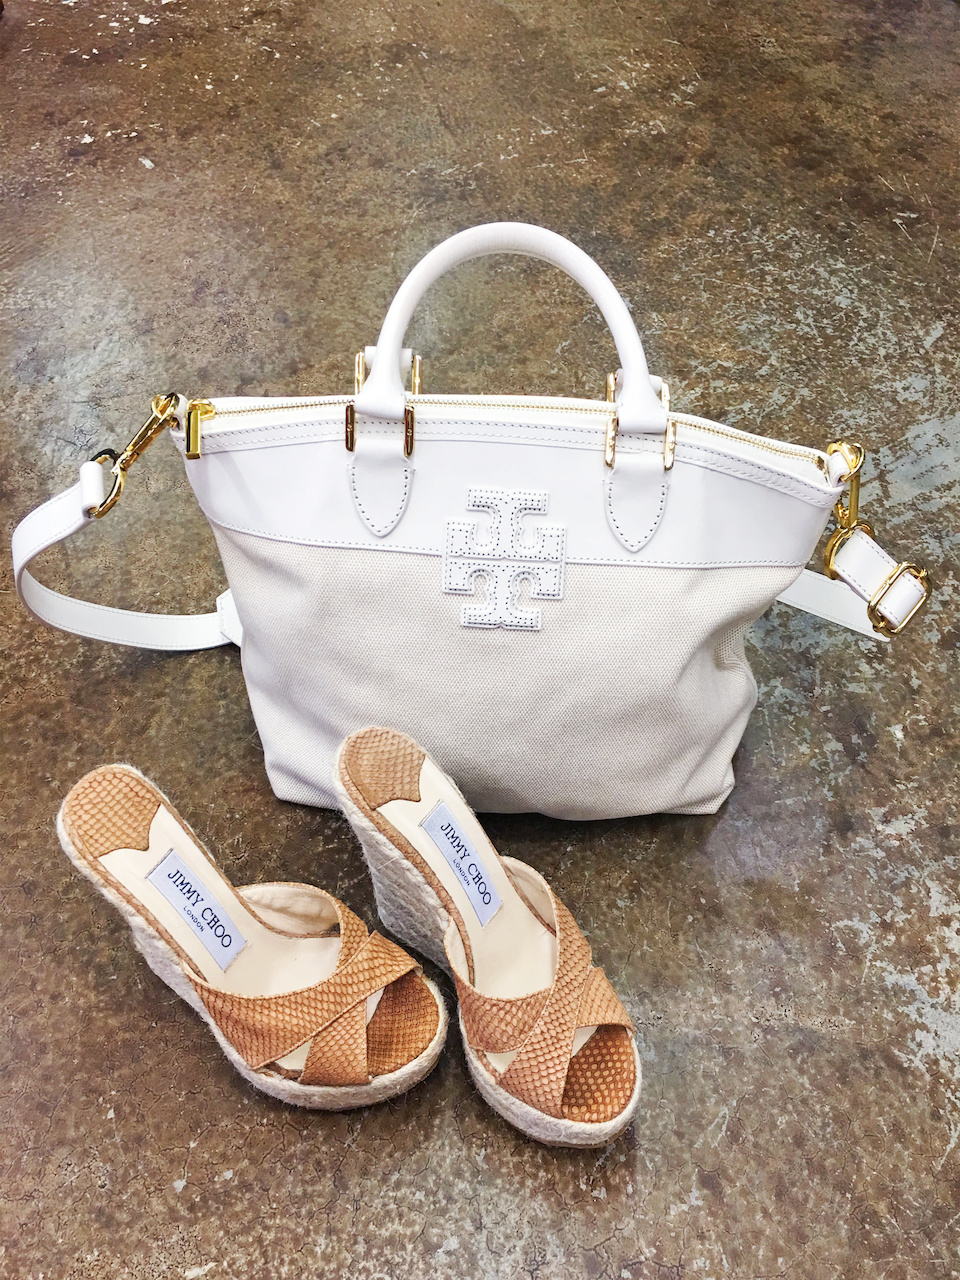 Tory Burch bag, $168, and Jimmy Choo wedges, $125.50, at Second Hand Rose